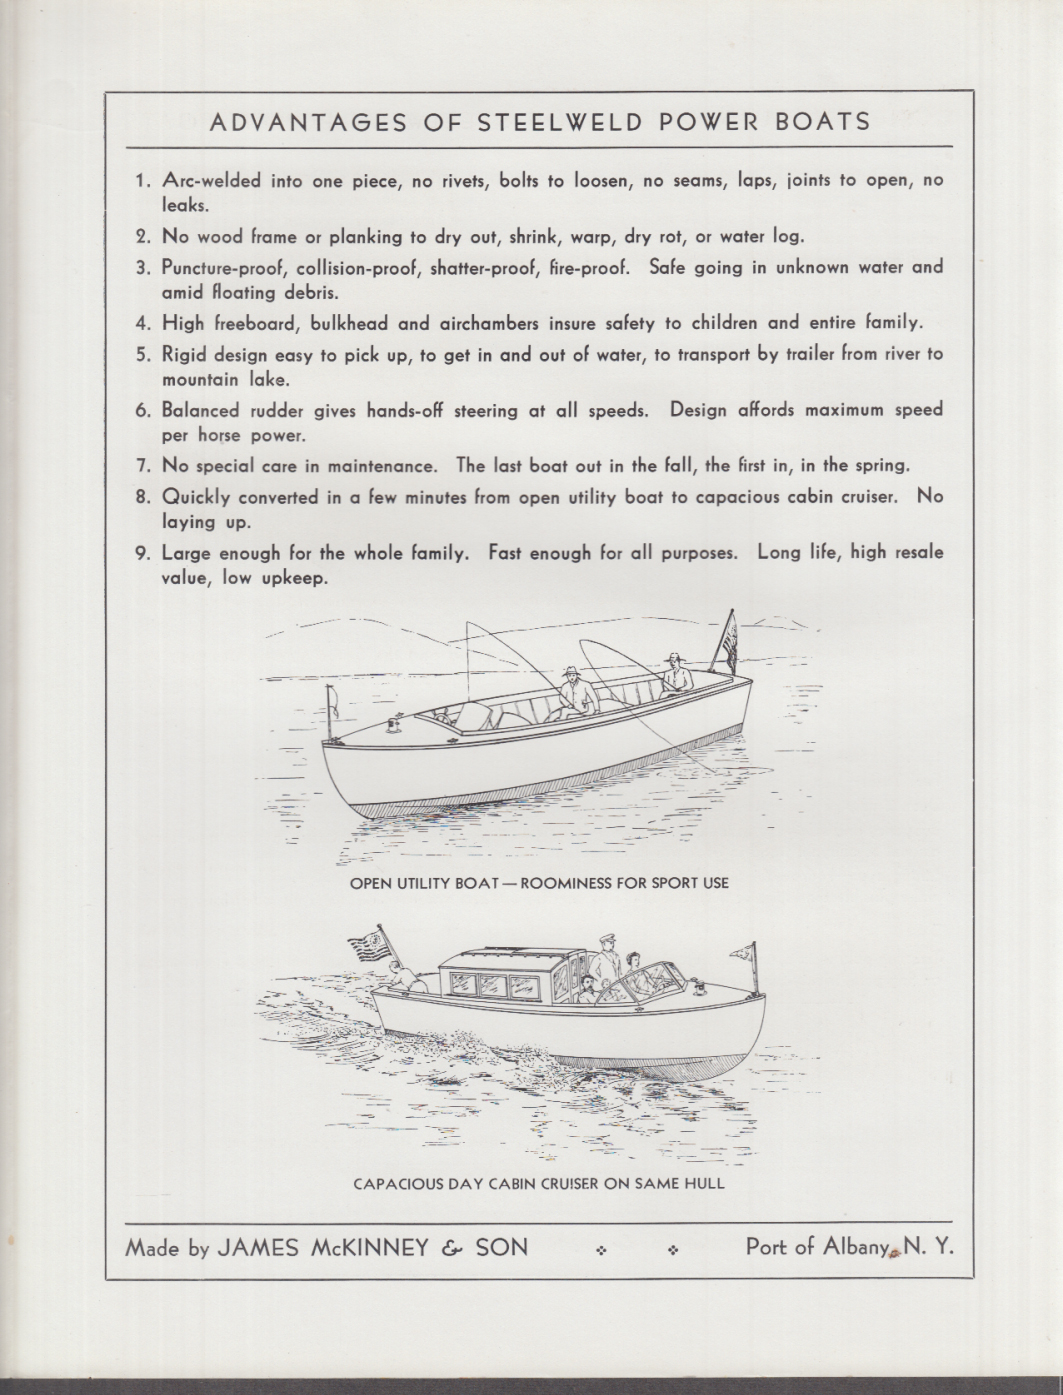 Image for 1933 Launches The Steelweld Power Boat sales folder James McKinney & Son